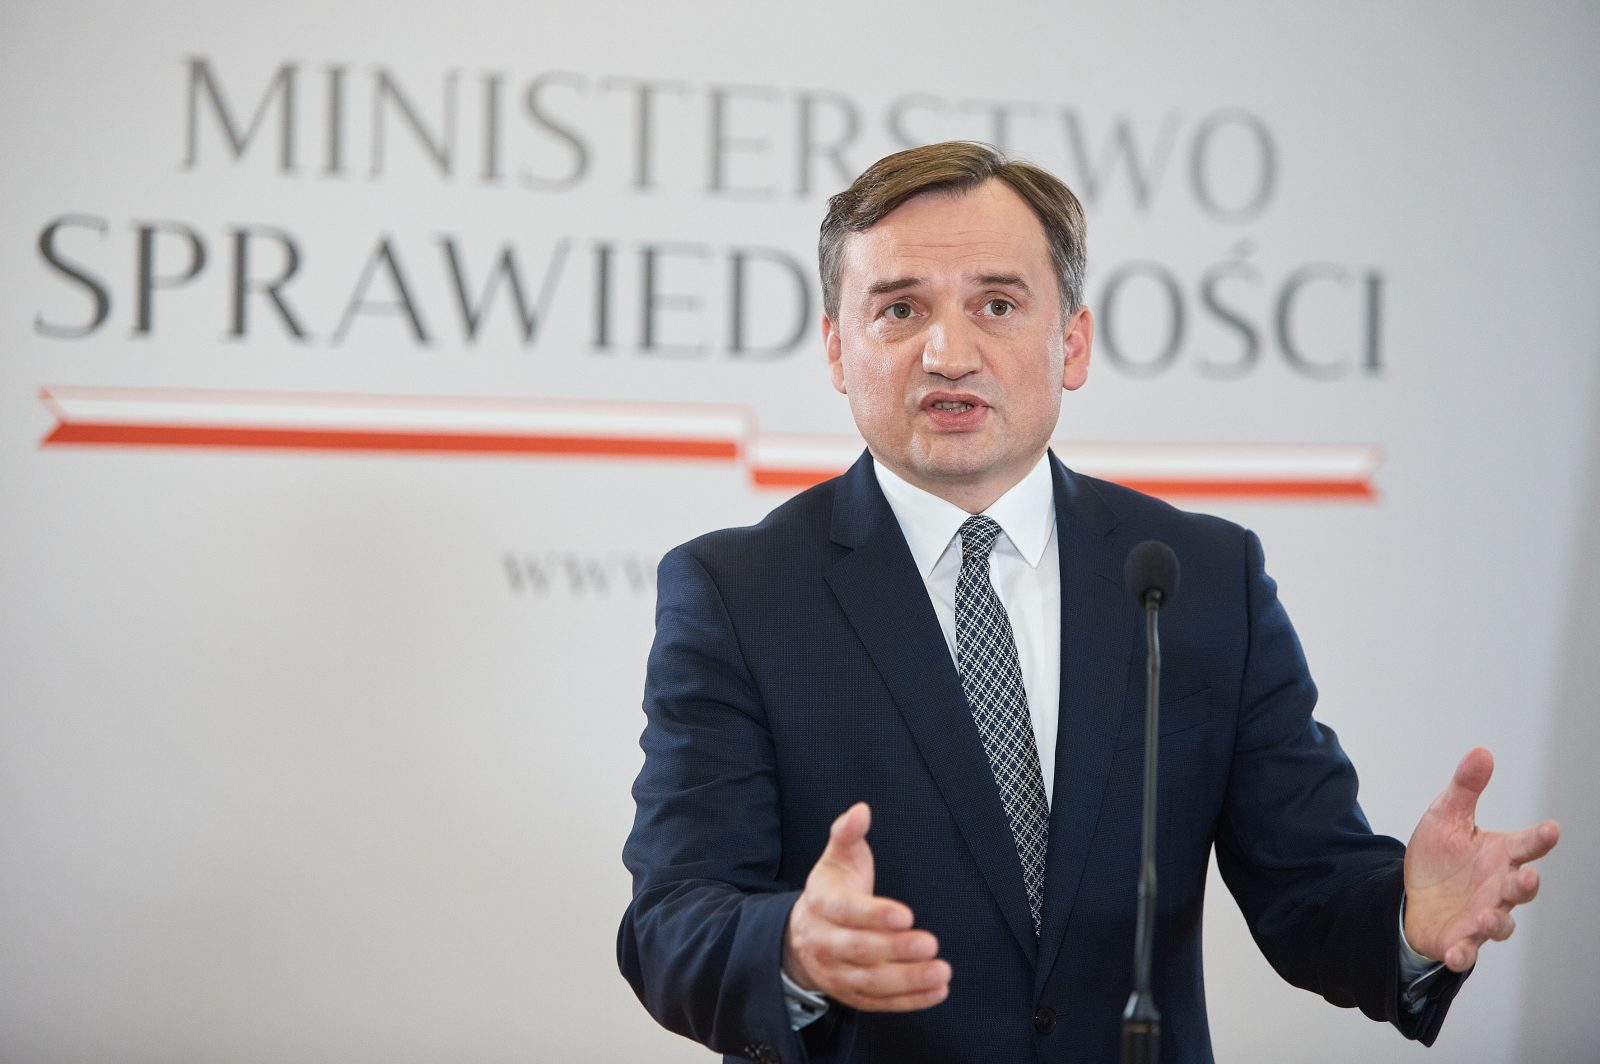 Polens Justizminister Zbigniew Ziobro